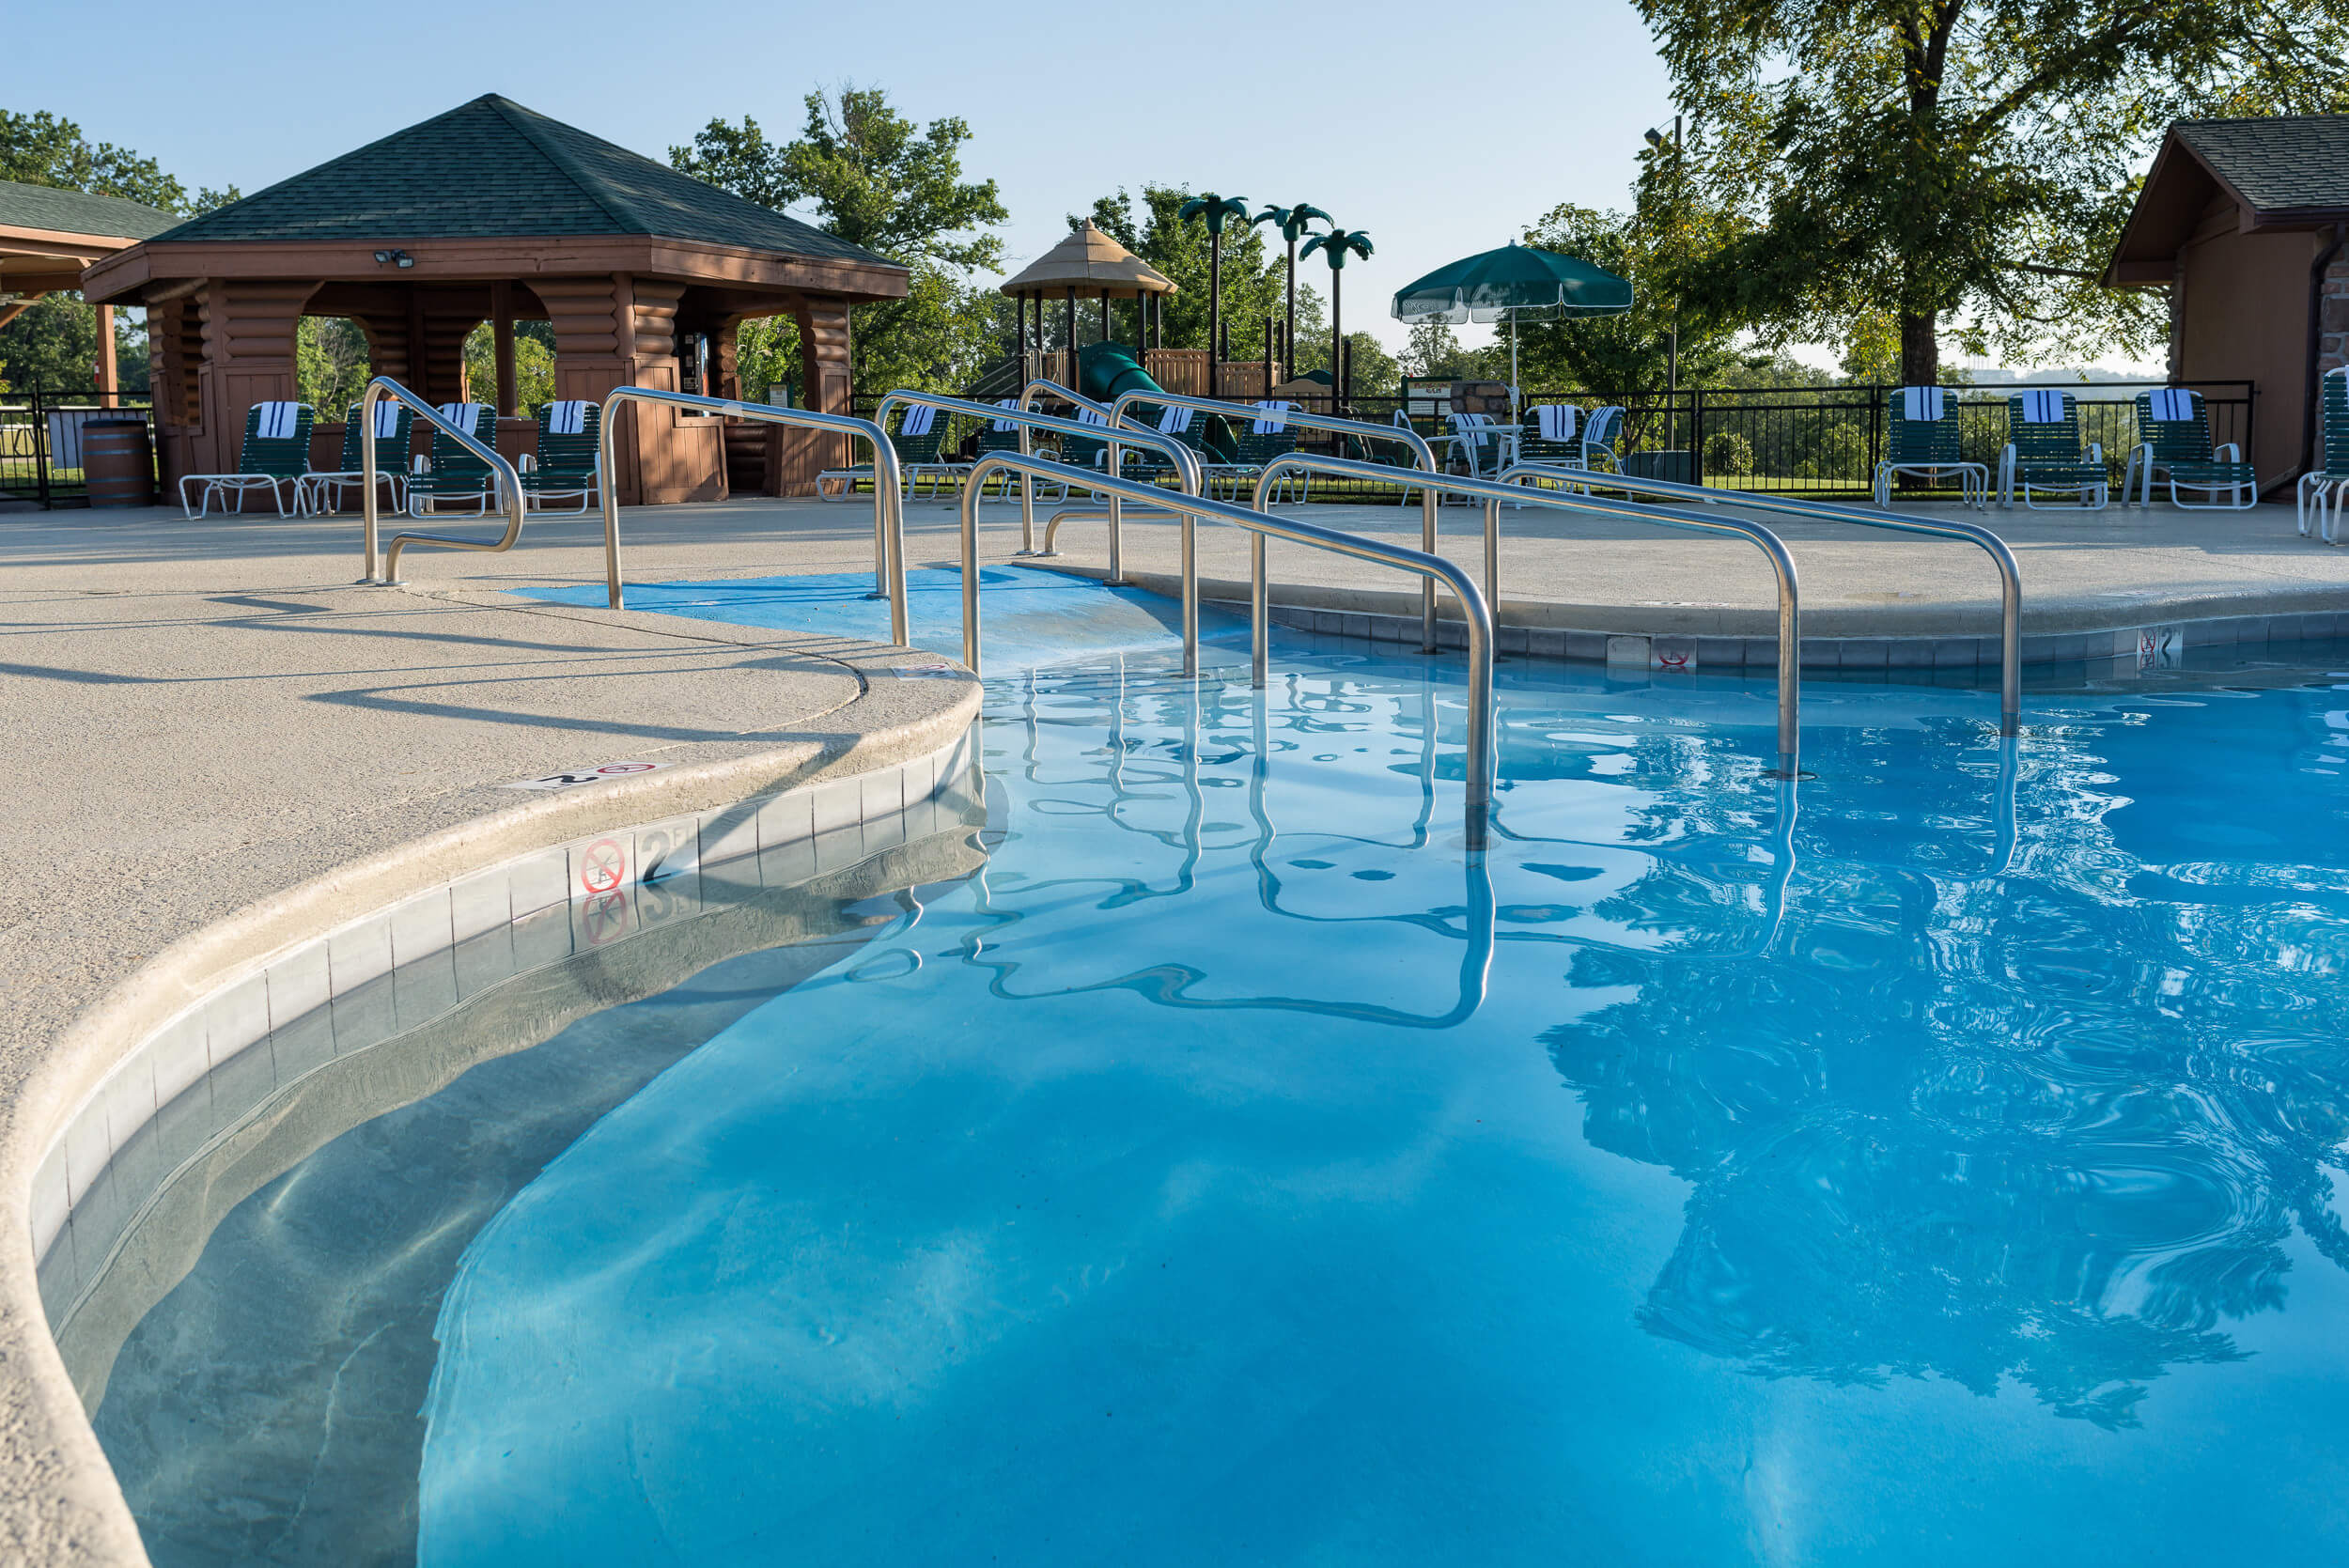 Outdoor pool surrounded by lounge chairs | Westgate Branson Woods Resort | Westgate Resorts